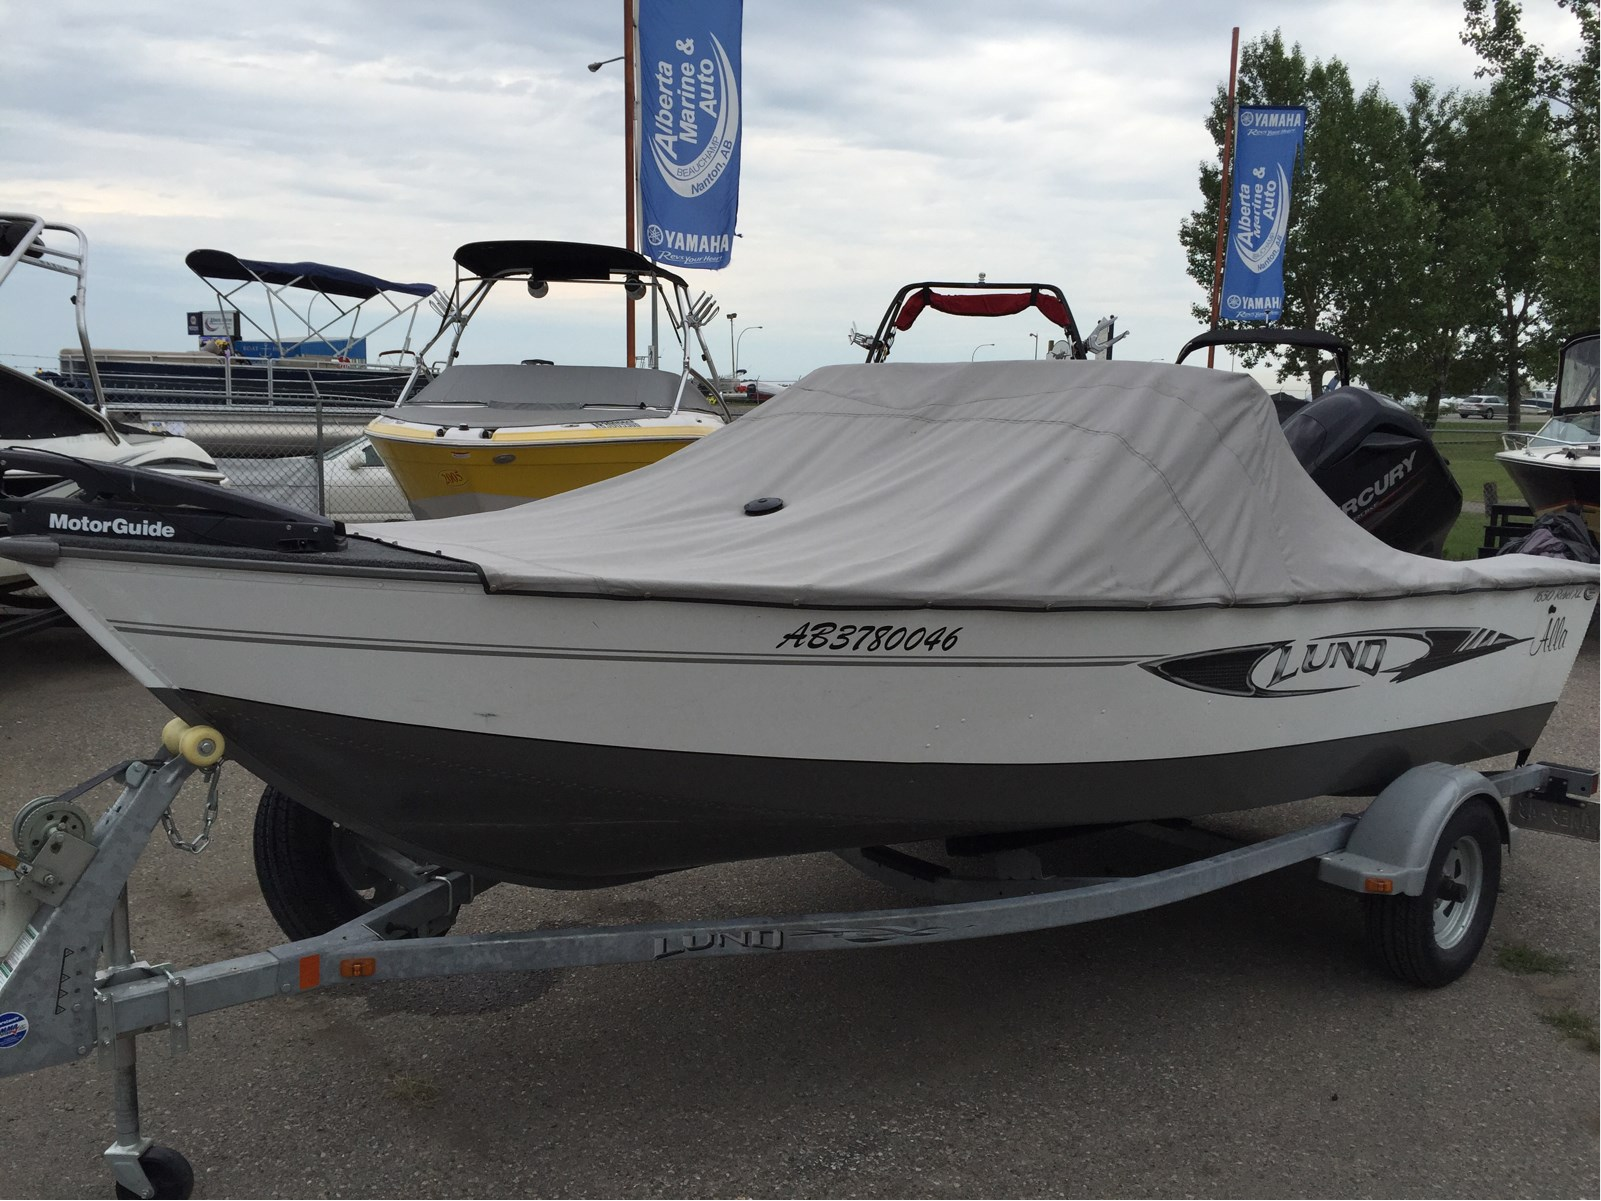 Lund 1650 rebel xl sport 2013 used boat for sale in nanton for Used lund fishing boats for sale